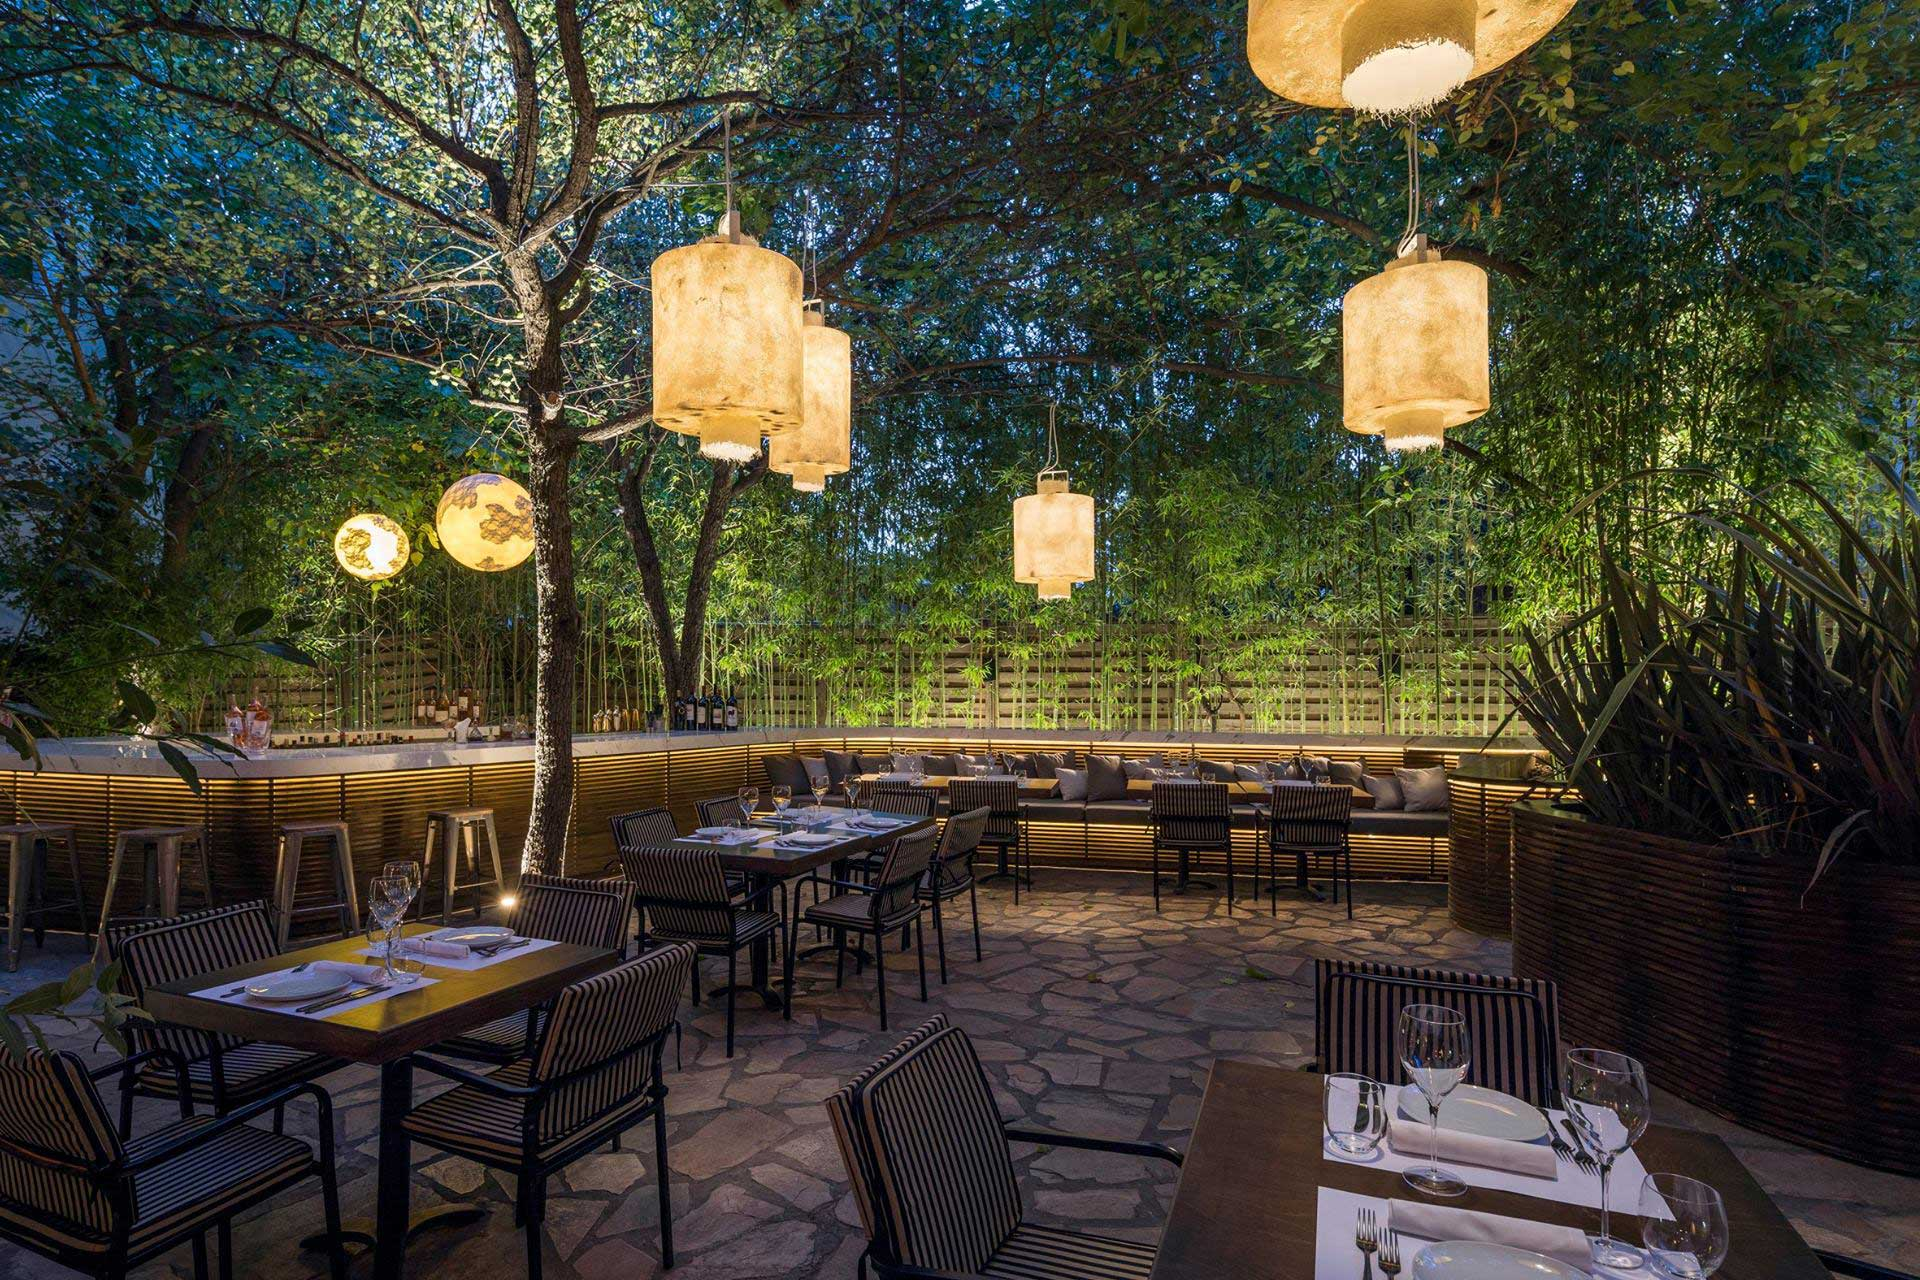 Illuminating a restaurant table: different types of lamps and performances